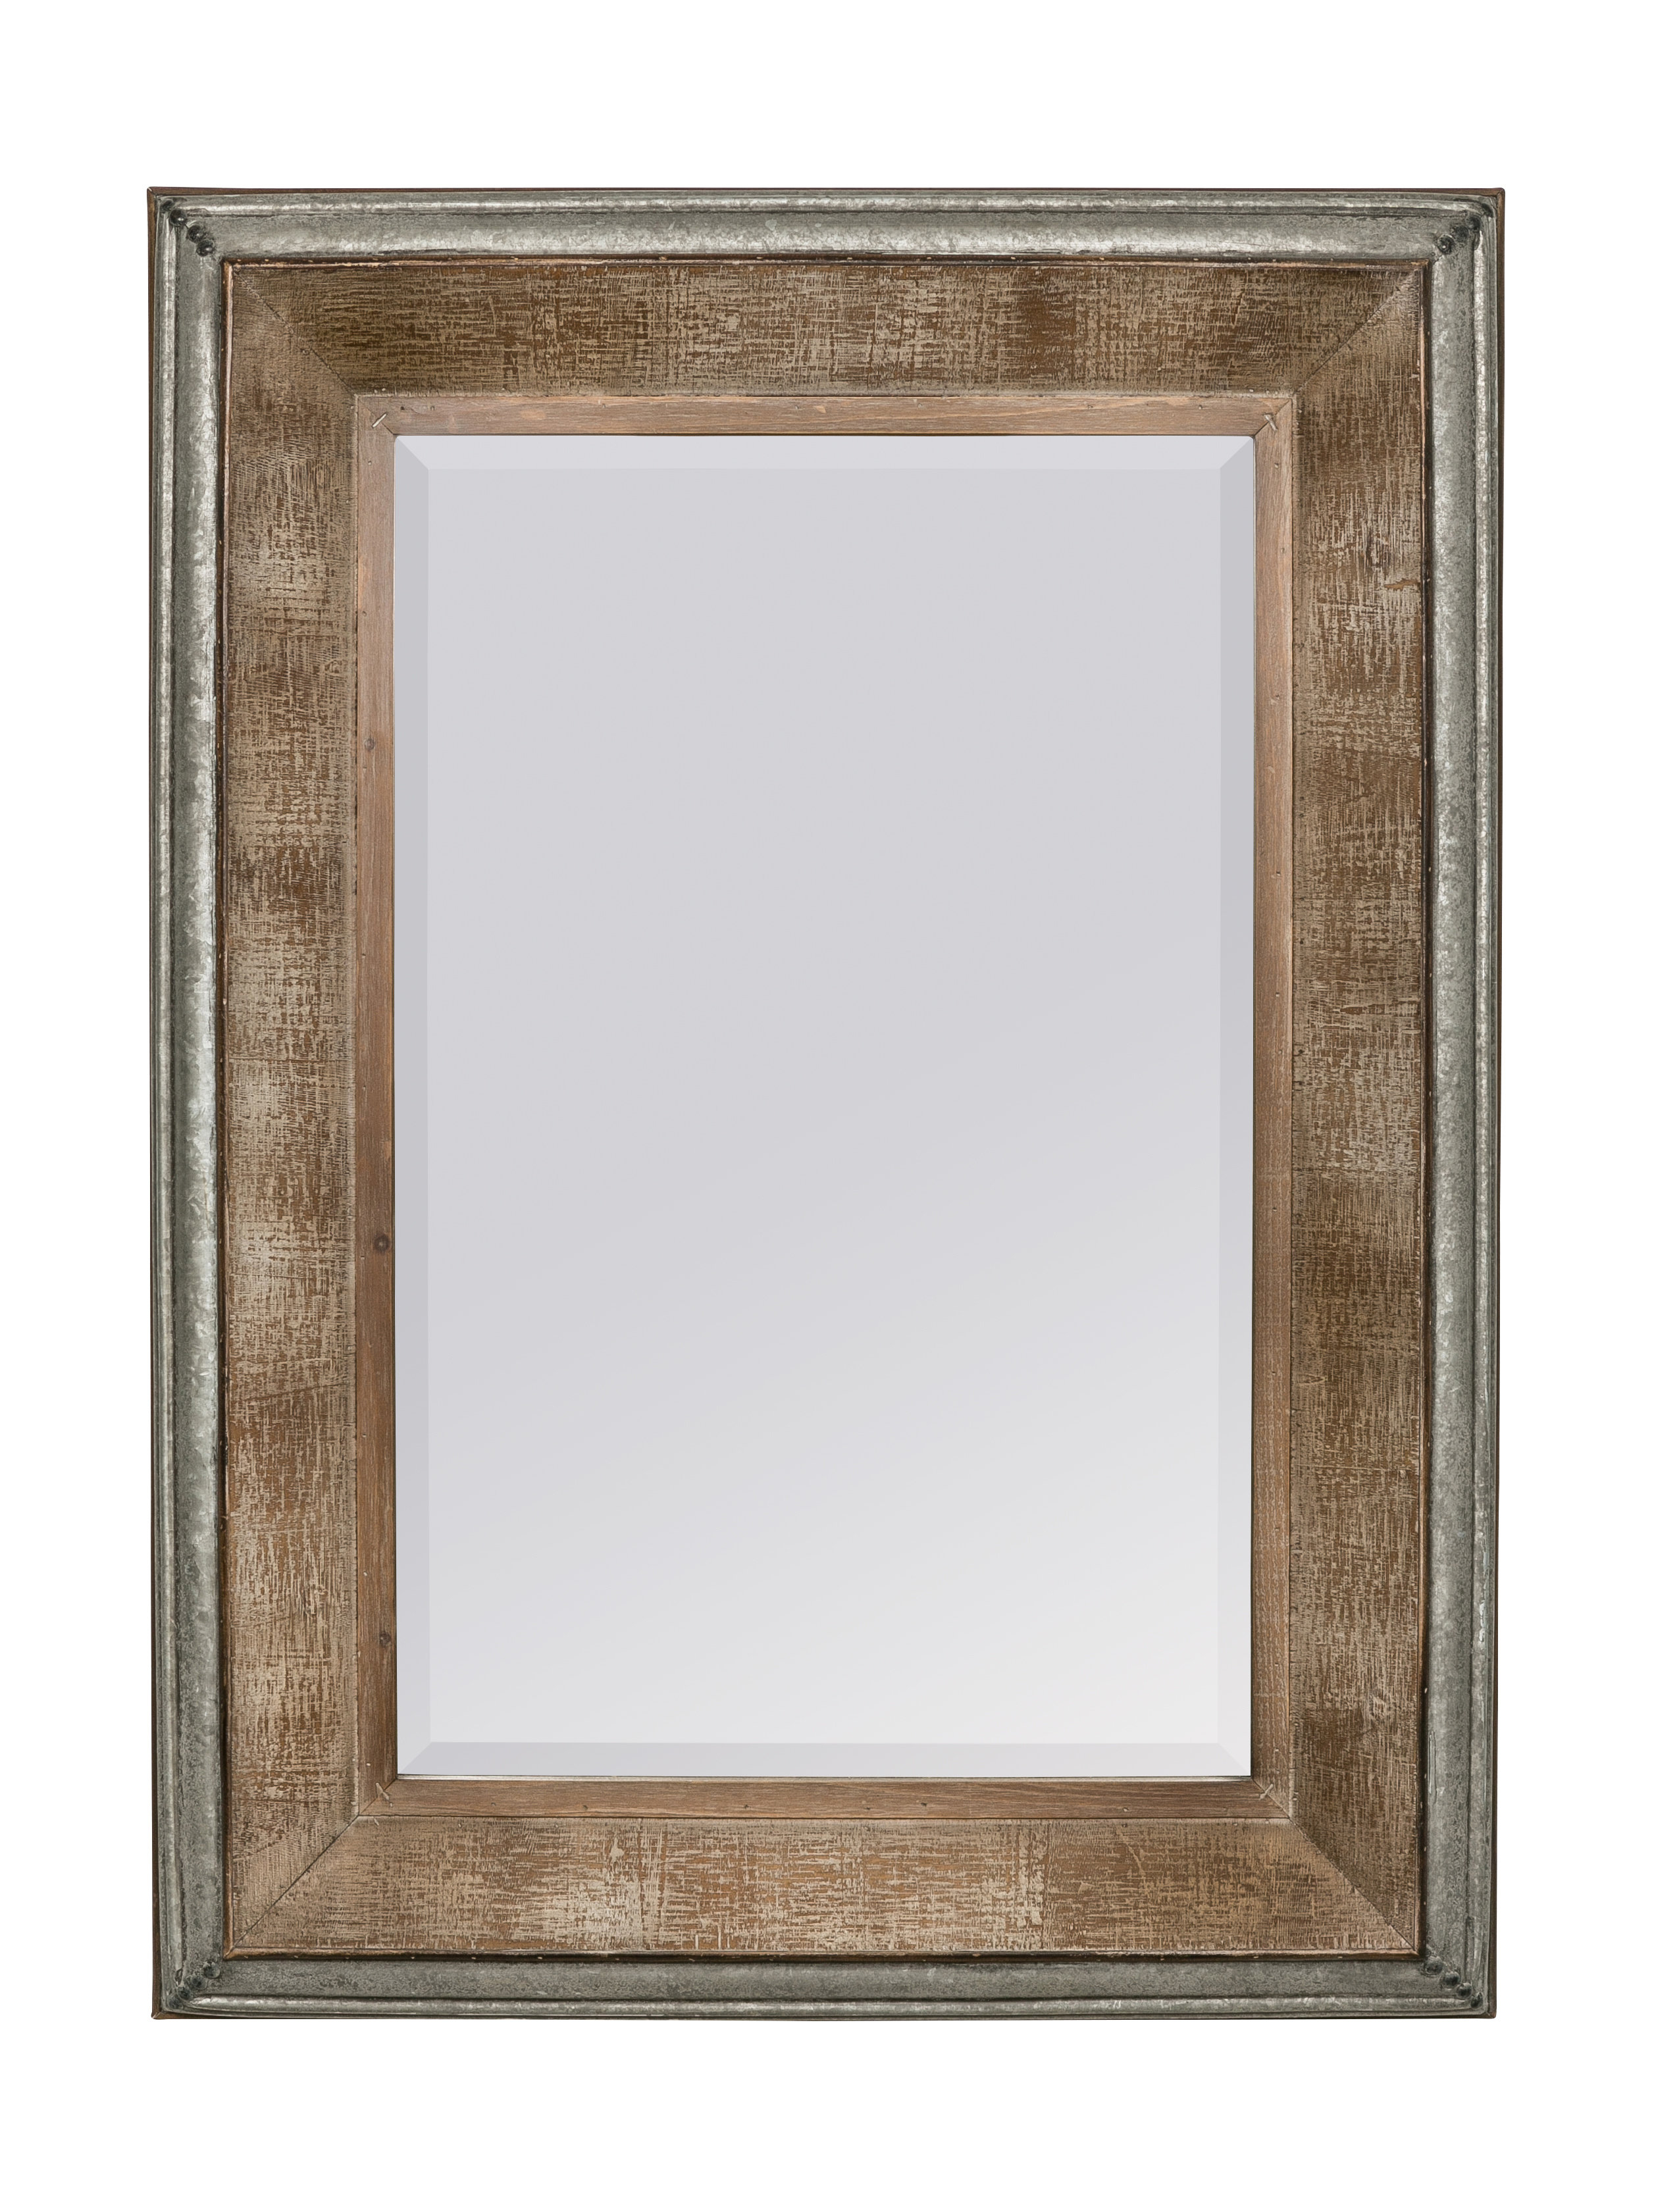 Hatten Modern & Contemporary Beveled Accent Mirror Intended For Modern & Contemporary Beveled Accent Mirrors (View 17 of 30)